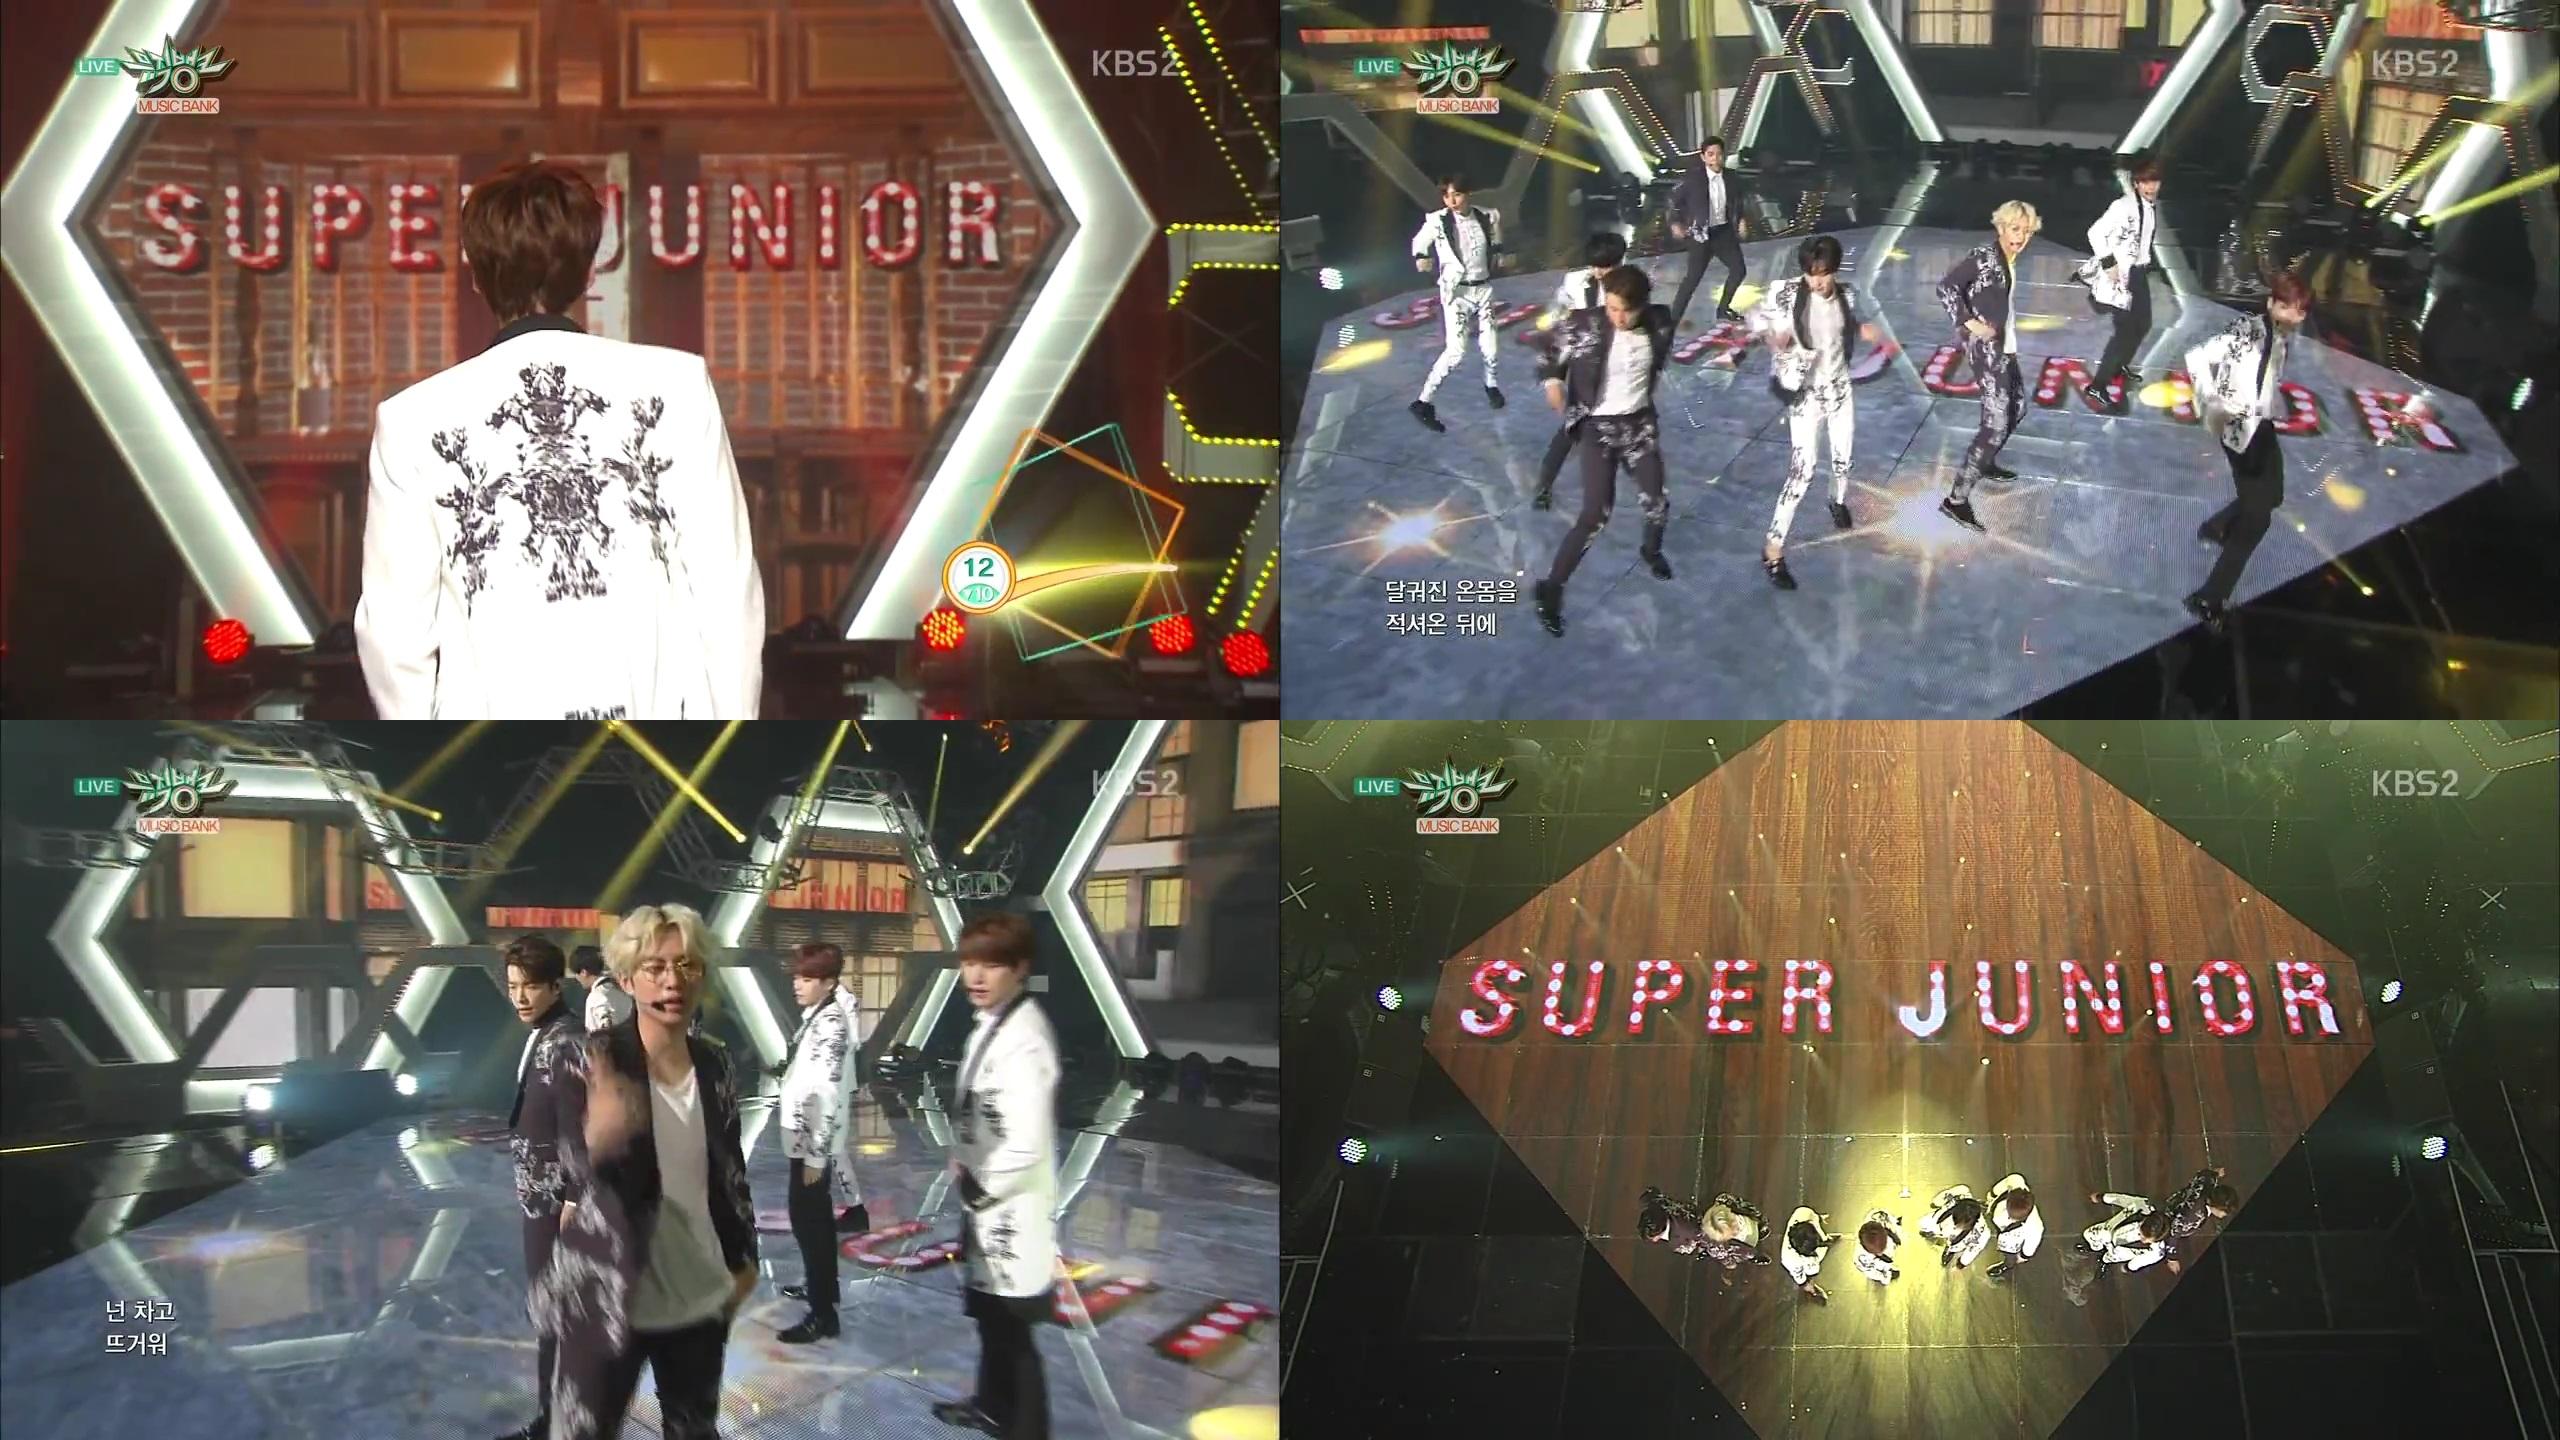 http://s6.picofile.com/file/8225814668/Super_Junior_%EC%8A%88%ED%8D%BC%EC%A3%BC%EB%8B%88%EC%96%B4_Devil_KBS_MUSIC_BANK_2015_08_07_By_Bella_K_C.jpg